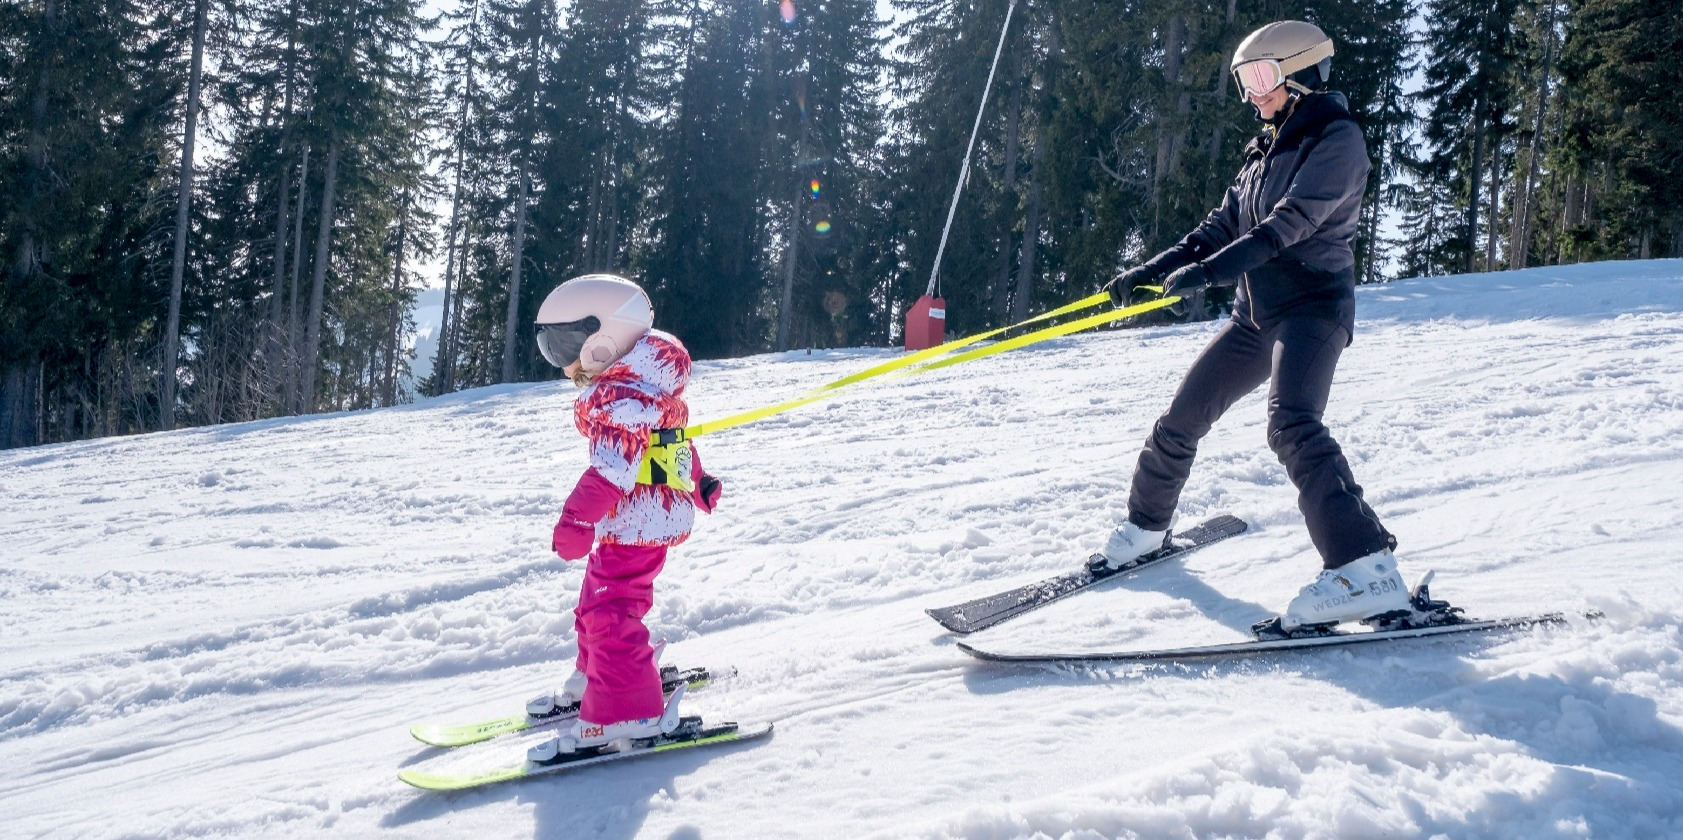 How Can I Stay Safe While Skiing?